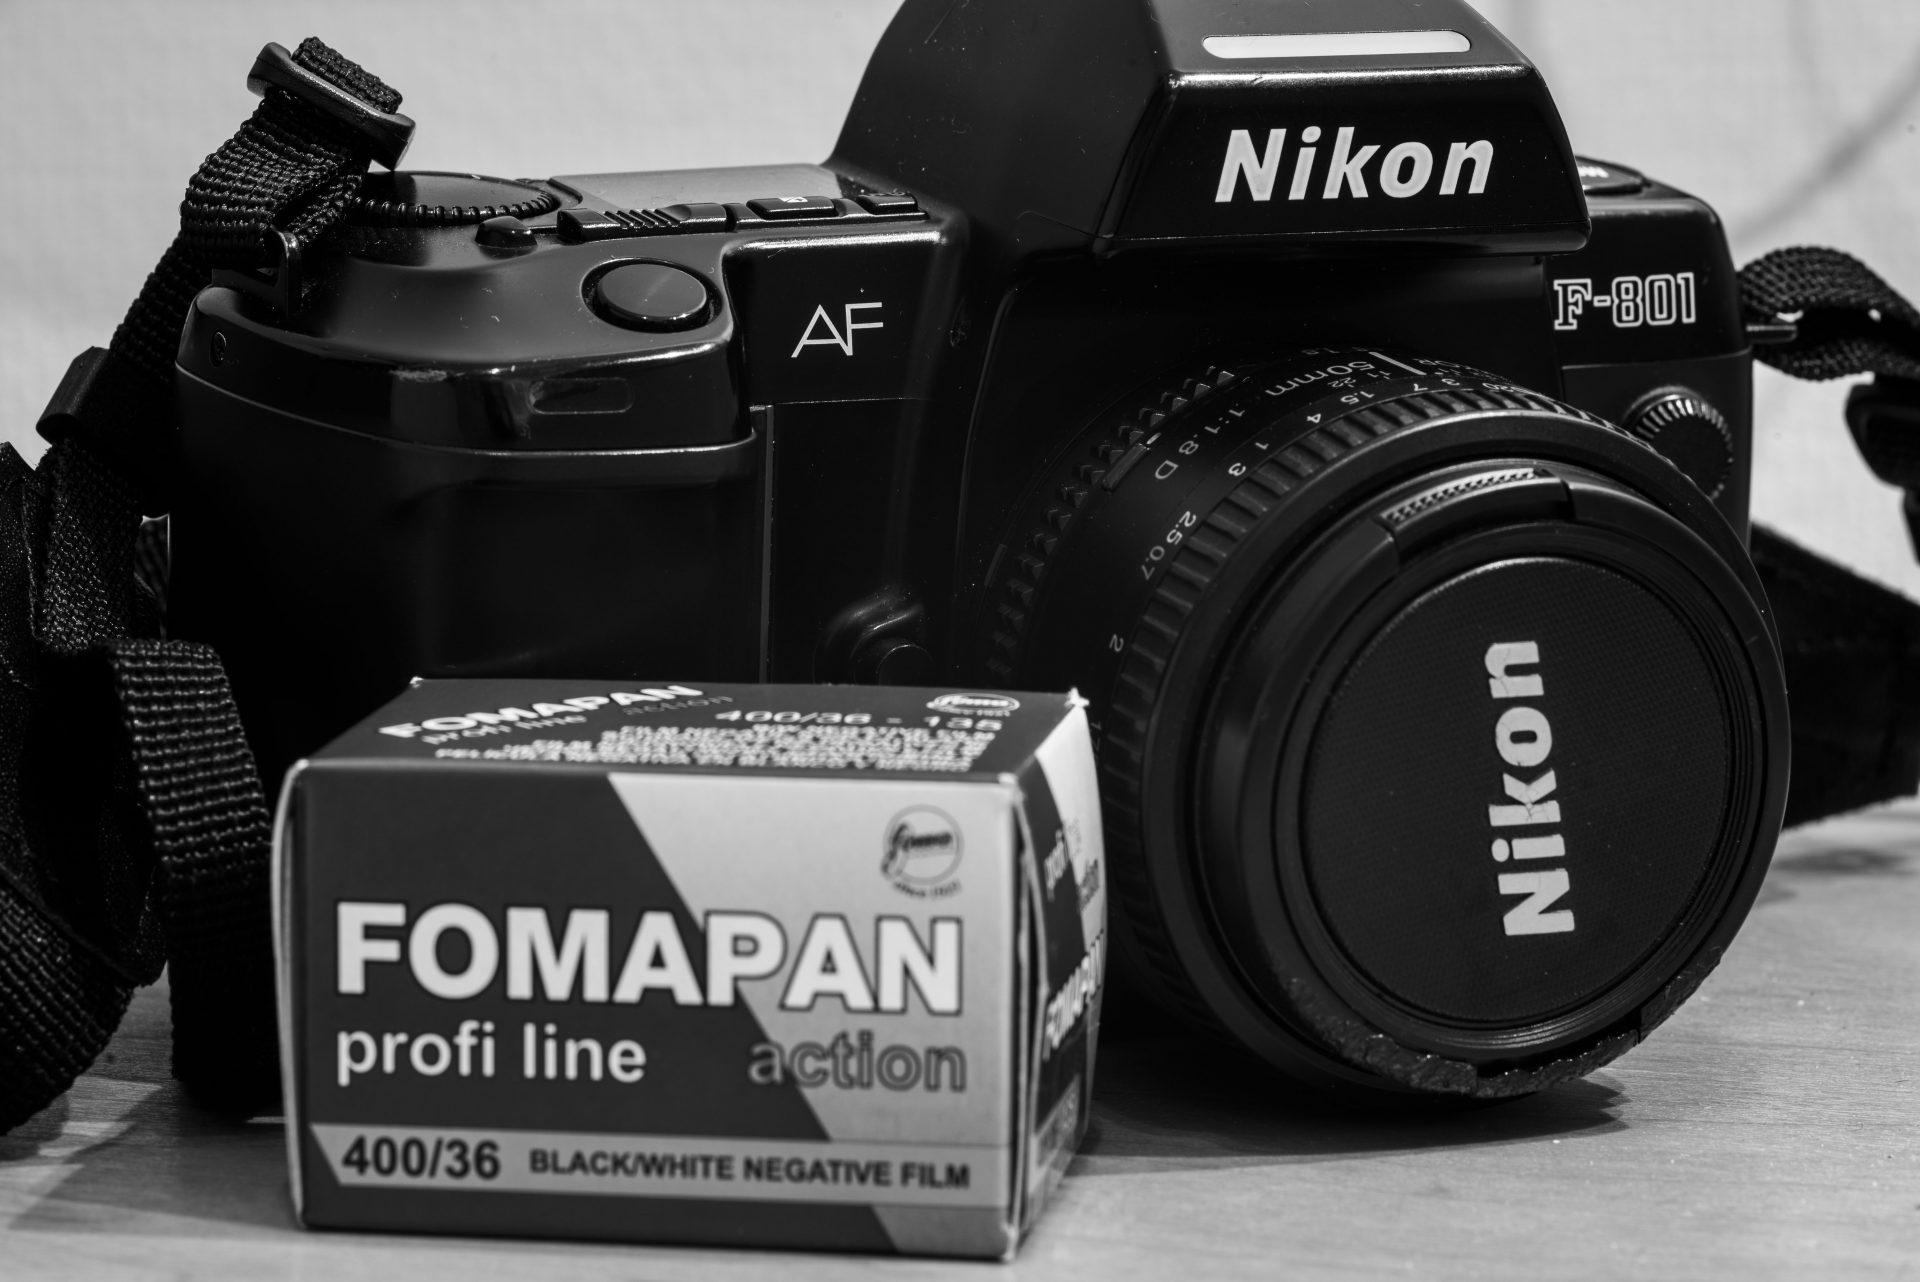 F801 and fomapan